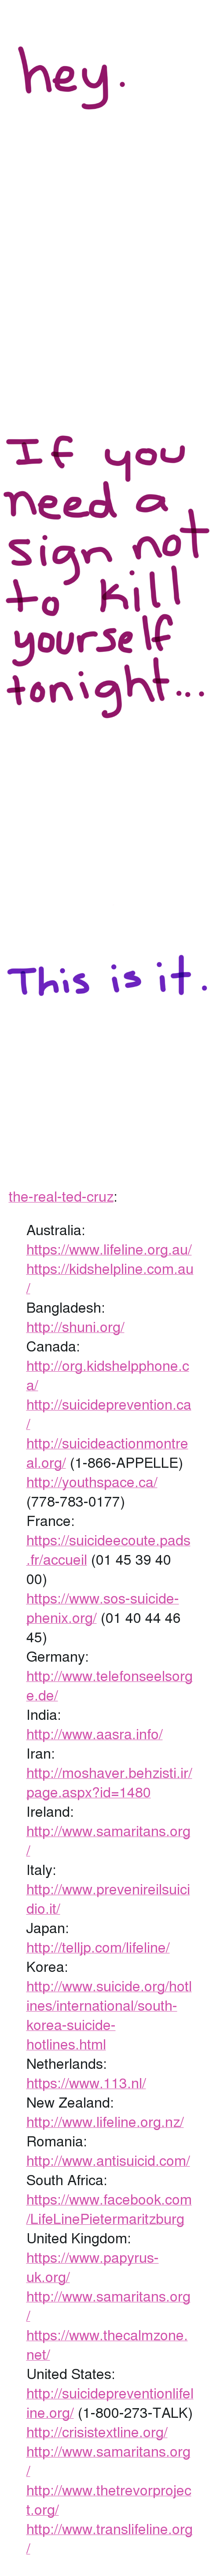 "Africa, Facebook, and Ted: hey  2   meed a  Sian no  lg  +o Kil  yourse  tonight   This is it. <p><a href=""https://the-real-ted-cruz.tumblr.com/post/158655552134/australia-httpswwwlifelineorgau"" class=""tumblr_blog"">the-real-ted-cruz</a>:</p><blockquote> <p>Australia:<br/><a href=""https://www.lifeline.org.au/"">https://www.lifeline.org.au/</a><br/><a href=""https://kidshelpline.com.au/"">https://kidshelpline.com.au/</a></p>  <p>Bangladesh: <br/><a href=""http://shuni.org/"">http://shuni.org/</a></p>  <p>Canada: <br/><a href=""http://org.kidshelpphone.ca/"">http://org.kidshelpphone.ca/</a><br/><a href=""http://suicideprevention.ca/"">http://suicideprevention.ca/</a><br/><a href=""http://suicideactionmontreal.org/"">http://suicideactionmontreal.org/</a> (1-866-APPELLE)<br/><a href=""http://youthspace.ca/"">http://youthspace.ca/</a> (778-783-0177)</p>  <p>France: <br/><a href=""https://suicideecoute.pads.fr/accueil"">https://suicideecoute.pads.fr/accueil</a> (01 45 39 40 00)<br/><a href=""https://www.sos-suicide-phenix.org/"">https://www.sos-suicide-phenix.org/</a> (01 40 44 46 45)</p>  <p>Germany: <br/><a href=""http://www.telefonseelsorge.de/"">http://www.telefonseelsorge.de/</a></p>  <p>India:<br/><a href=""http://www.aasra.info/"">http://www.aasra.info/</a></p>  <p>Iran:<br/><a href=""http://moshaver.behzisti.ir/page.aspx?id=1480"">http://moshaver.behzisti.ir/page.aspx?id=1480</a></p>  <p>Ireland:<br/><a href=""http://www.samaritans.org/"">http://www.samaritans.org/</a></p>  <p>Italy:<br/><a href=""http://www.prevenireilsuicidio.it/"">http://www.prevenireilsuicidio.it/</a></p>  <p>Japan: <br/><a href=""http://telljp.com/lifeline/"">http://telljp.com/lifeline/</a></p>  <p>Korea: <br/><a href=""http://www.suicide.org/hotlines/international/south-korea-suicide-hotlines.html"">http://www.suicide.org/hotlines/international/south-korea-suicide-hotlines.html</a></p>  <p>Netherlands:<br/><a href=""https://www.113.nl/"">https://www.113.nl/</a></p>  <p>New Zealand:<br/><a href=""http://www.lifeline.org.nz/"">http://www.lifeline.org.nz/</a></p>  <p>Romania:<br/><a href=""http://www.antisuicid.com/"">http://www.antisuicid.com/</a></p>  <p>South Africa:<br/><a href=""https://www.facebook.com/LifeLinePietermaritzburg"">https://www.facebook.com/LifeLinePietermaritzburg</a></p>  <p>United Kingdom:<br/><a href=""https://www.papyrus-uk.org/"">https://www.papyrus-uk.org/</a><br/><a href=""http://www.samaritans.org/"">http://www.samaritans.org/</a><br/><a href=""https://www.thecalmzone.net/"">https://www.thecalmzone.net/</a></p>  <p>United States:<br/><a href=""http://suicidepreventionlifeline.org/"">http://suicidepreventionlifeline.org/</a> (1-800-273-TALK)<br/><a href=""http://crisistextline.org/"">http://crisistextline.org/</a><br/><a href=""http://www.samaritans.org/"">http://www.samaritans.org/</a><br/><a href=""http://www.thetrevorproject.org/"">http://www.thetrevorproject.org/</a><br/><a href=""http://www.translifeline.org/"">http://www.translifeline.org/</a></p> </blockquote>"